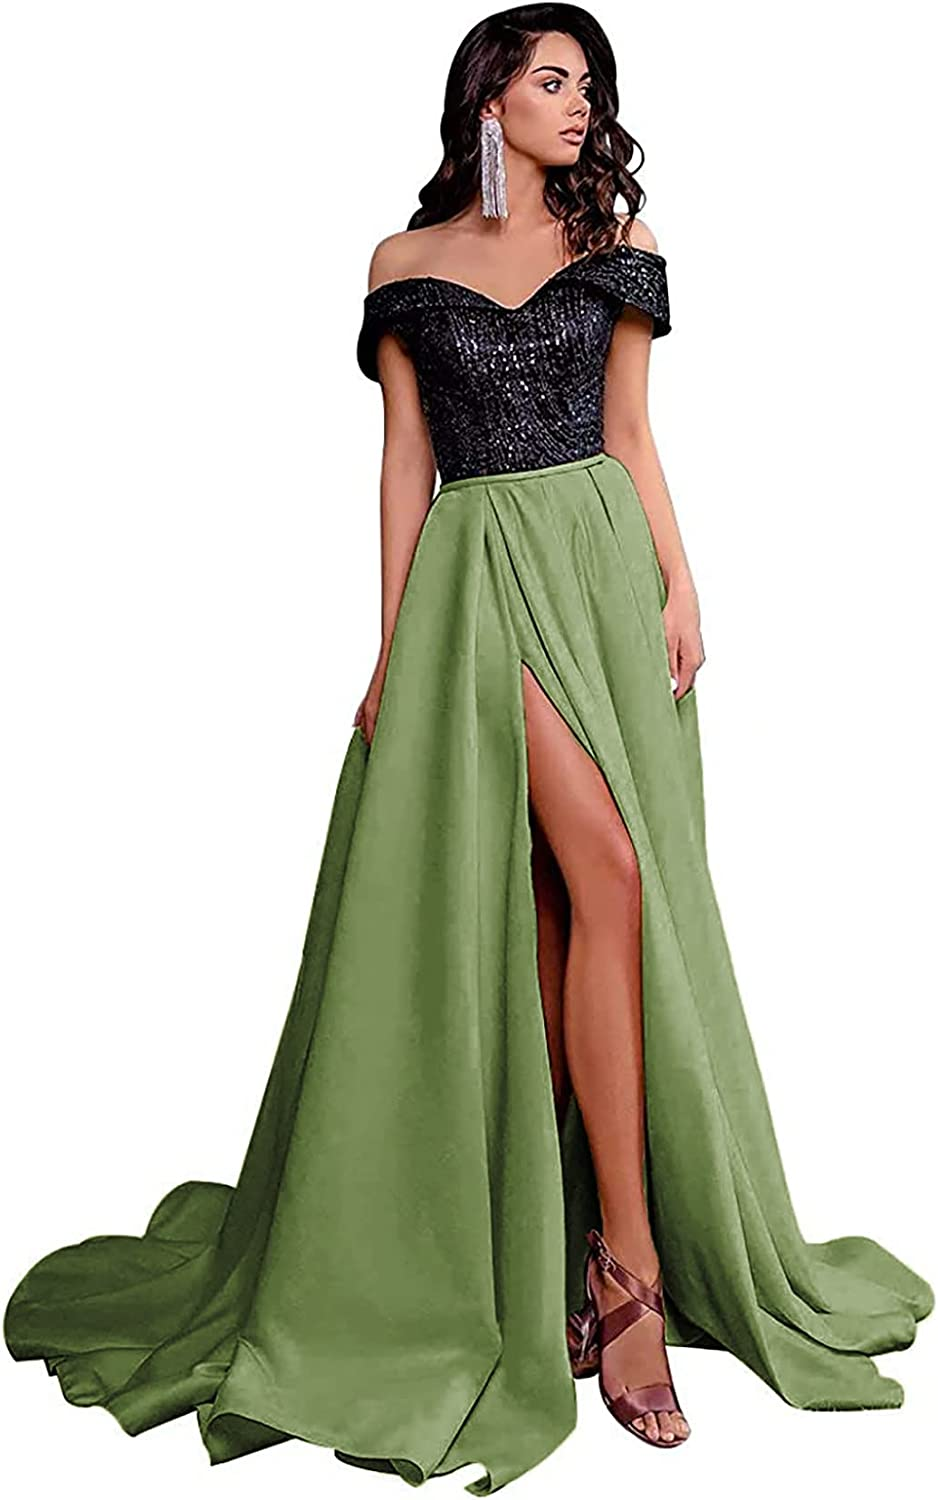 YUSHENGSM Prom Dresses for Women Long A-Line Formal Evening Party Satin Sequined Off The Shoulder Ball Gowns Slit Sexy